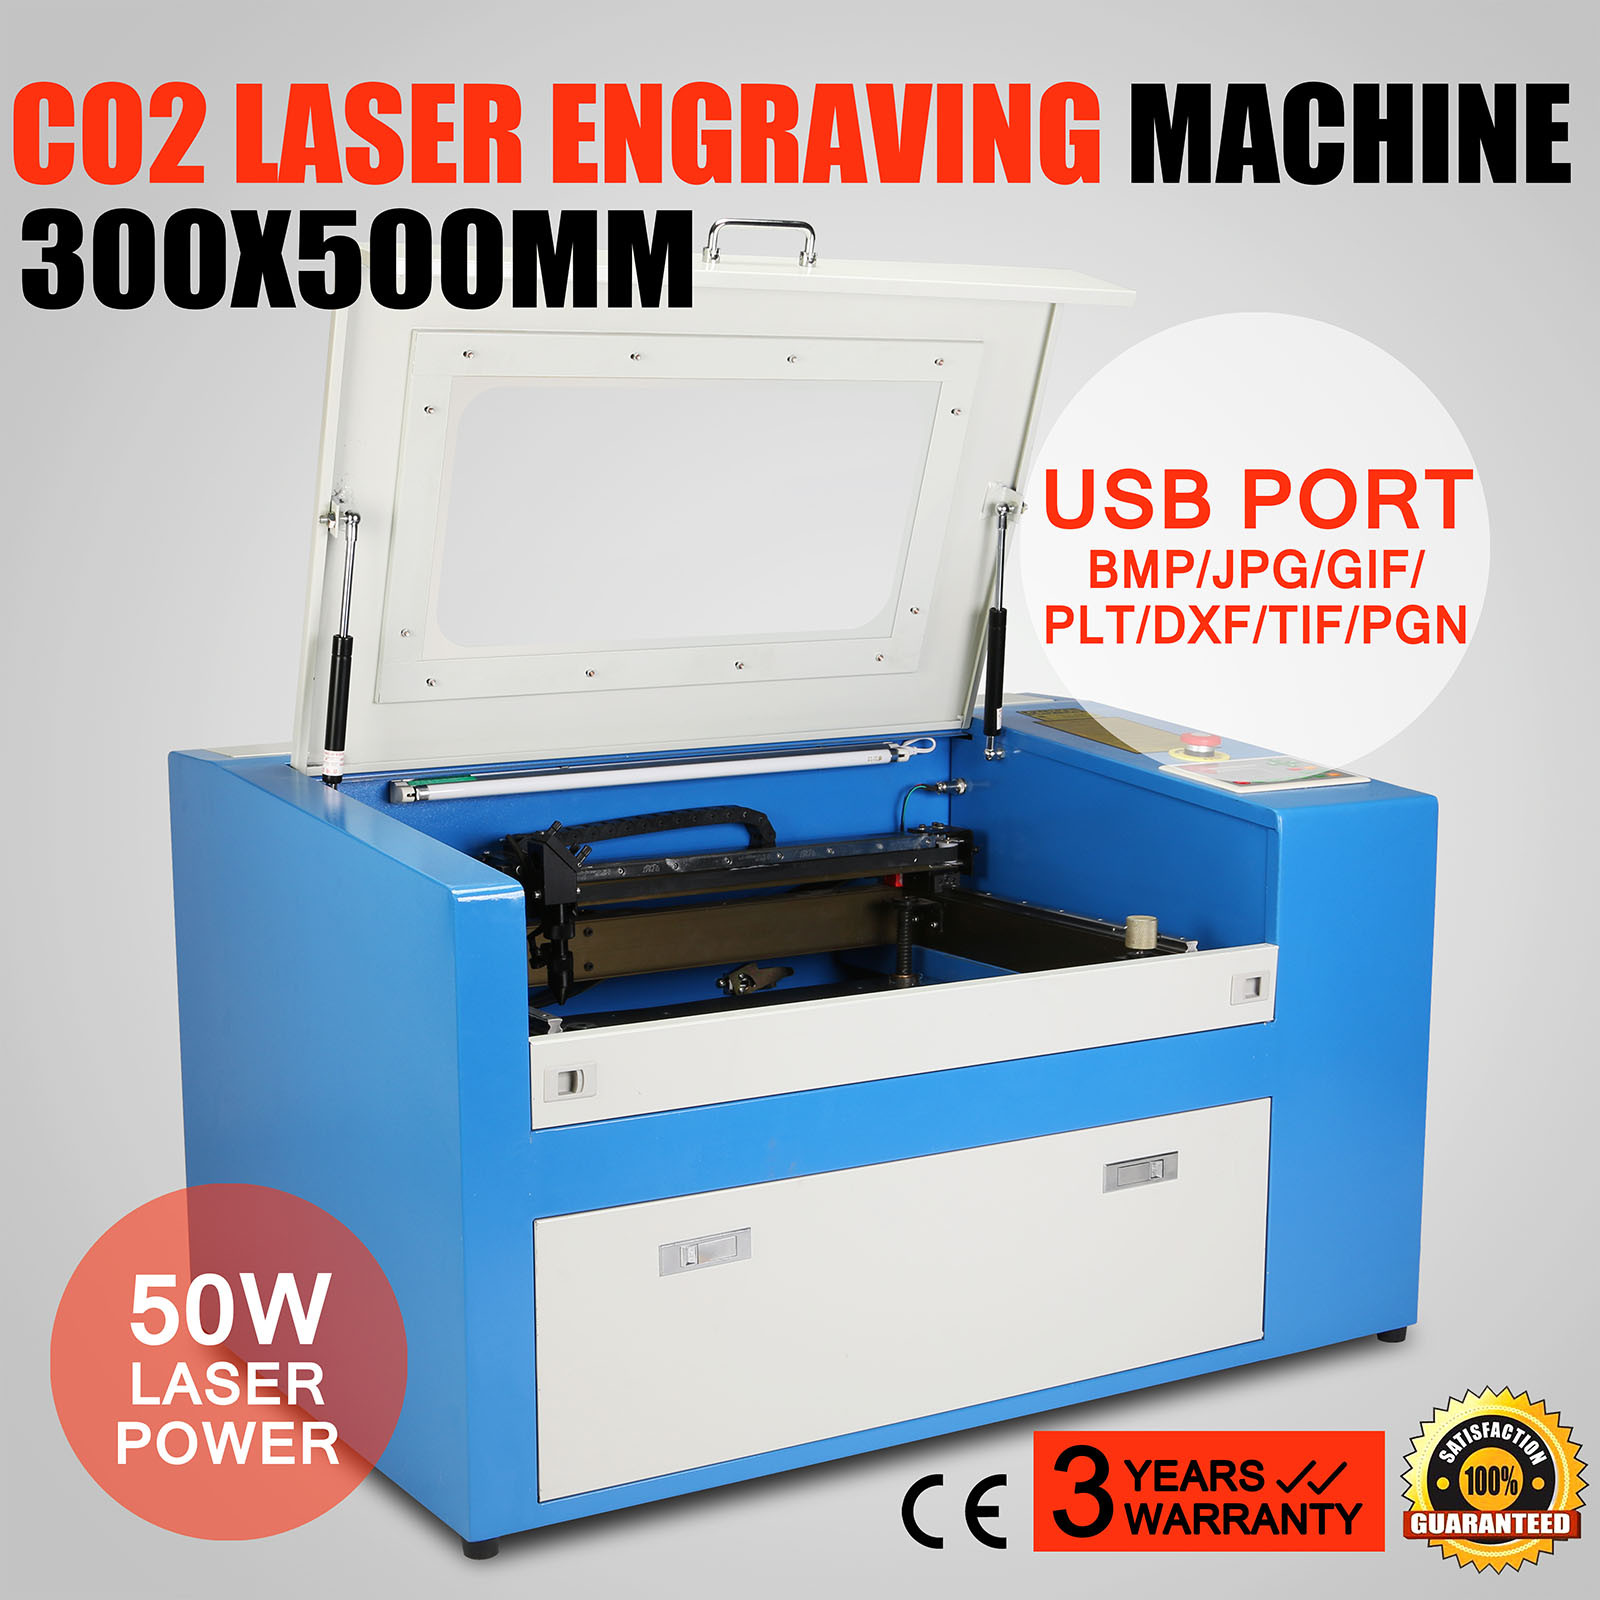 Mini DIY CNC Laser Engraving Machine,Pcb Milling and Wood Carving router, CNC 1610